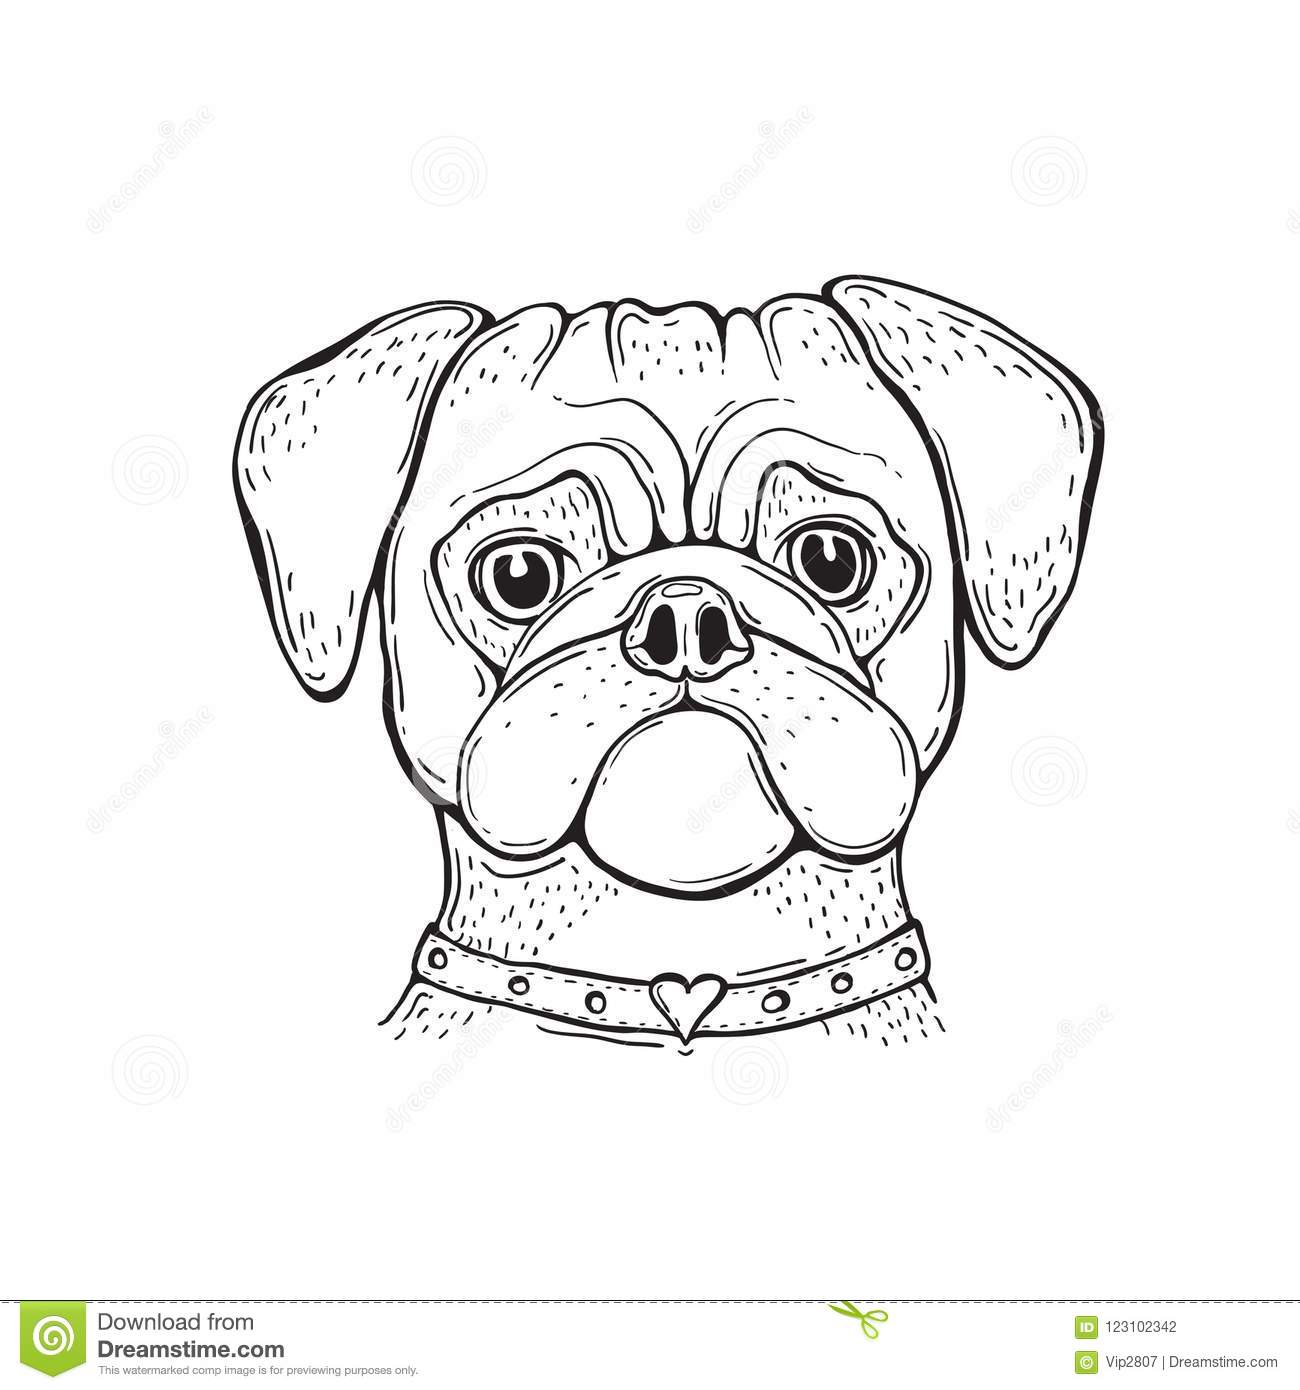 301124a3df2c Head Dog Pug, Hand-painted, Portrait. Black And White. Stock Vector ...